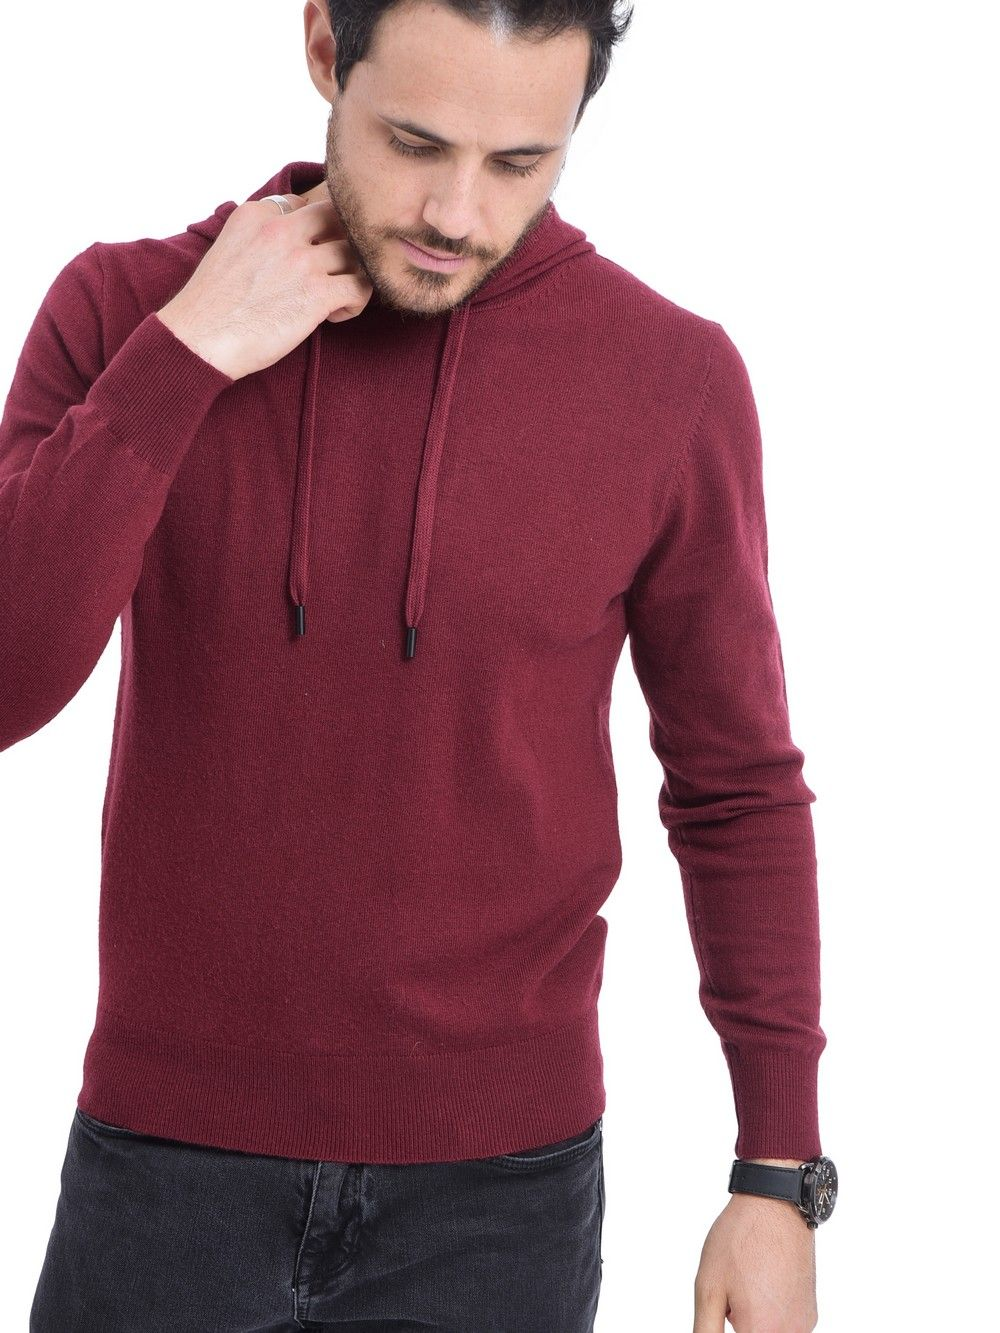 William De Faye Hooded Sweater with Cords in Maroon